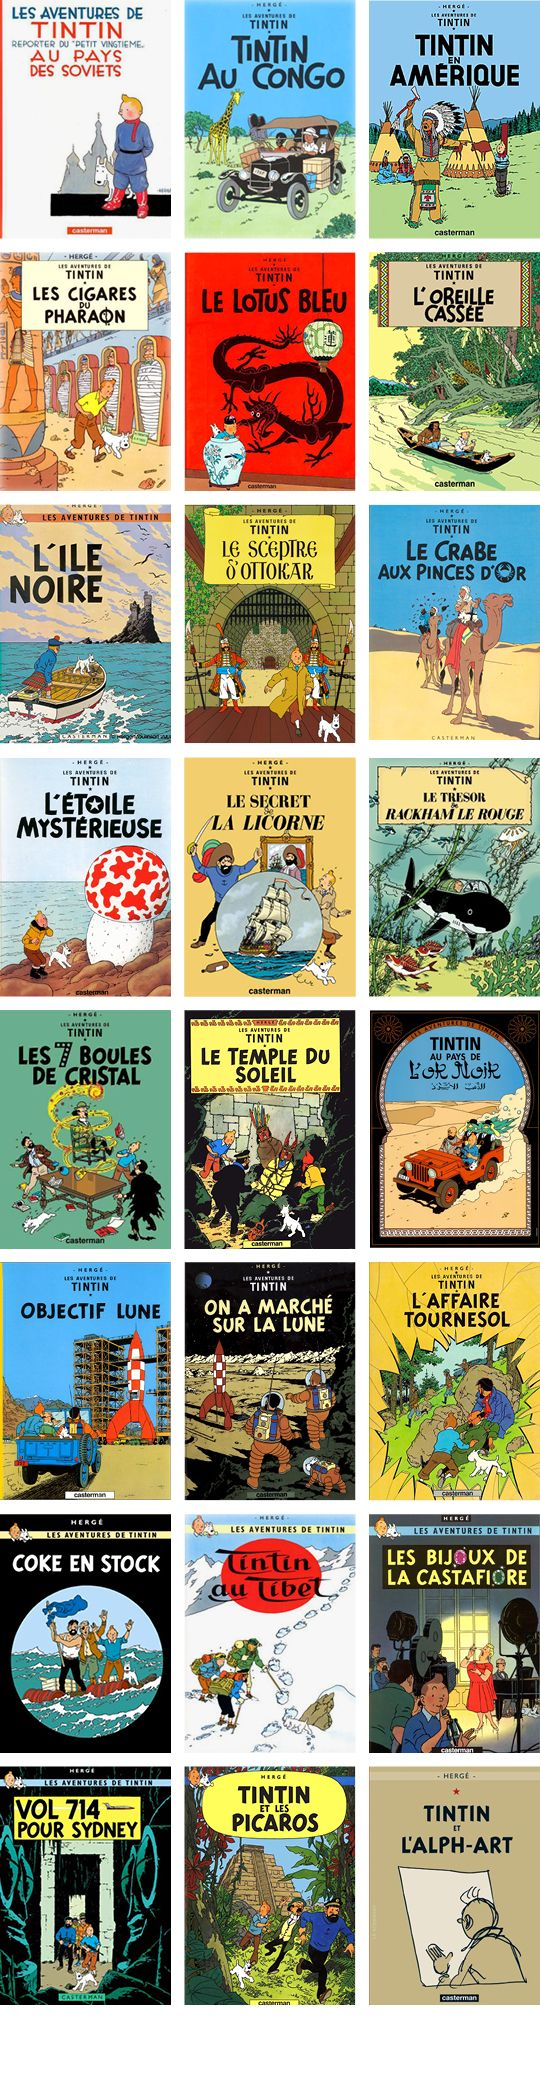 Tintin: an absulute favourite in our family. We read them in French, Spanish, German, English.